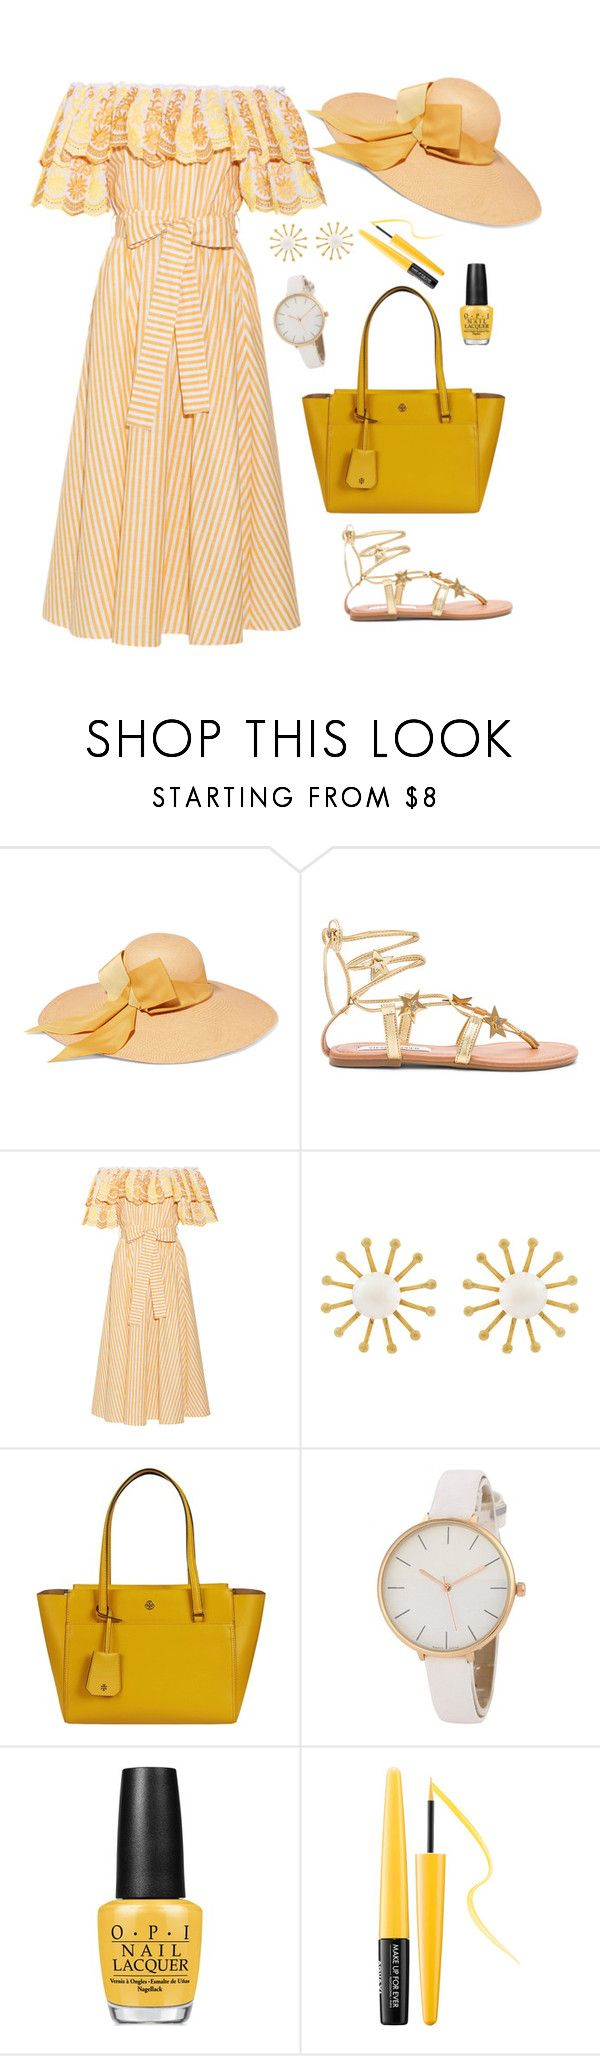 """Untitled #2040"" by ebramos ❤ liked on Polyvore featuring Sensi Studio, Steve Madden, Gül Hürgel, Meg Carter Designs, Tory Burch, OPI and MAKE UP FOR EVER"